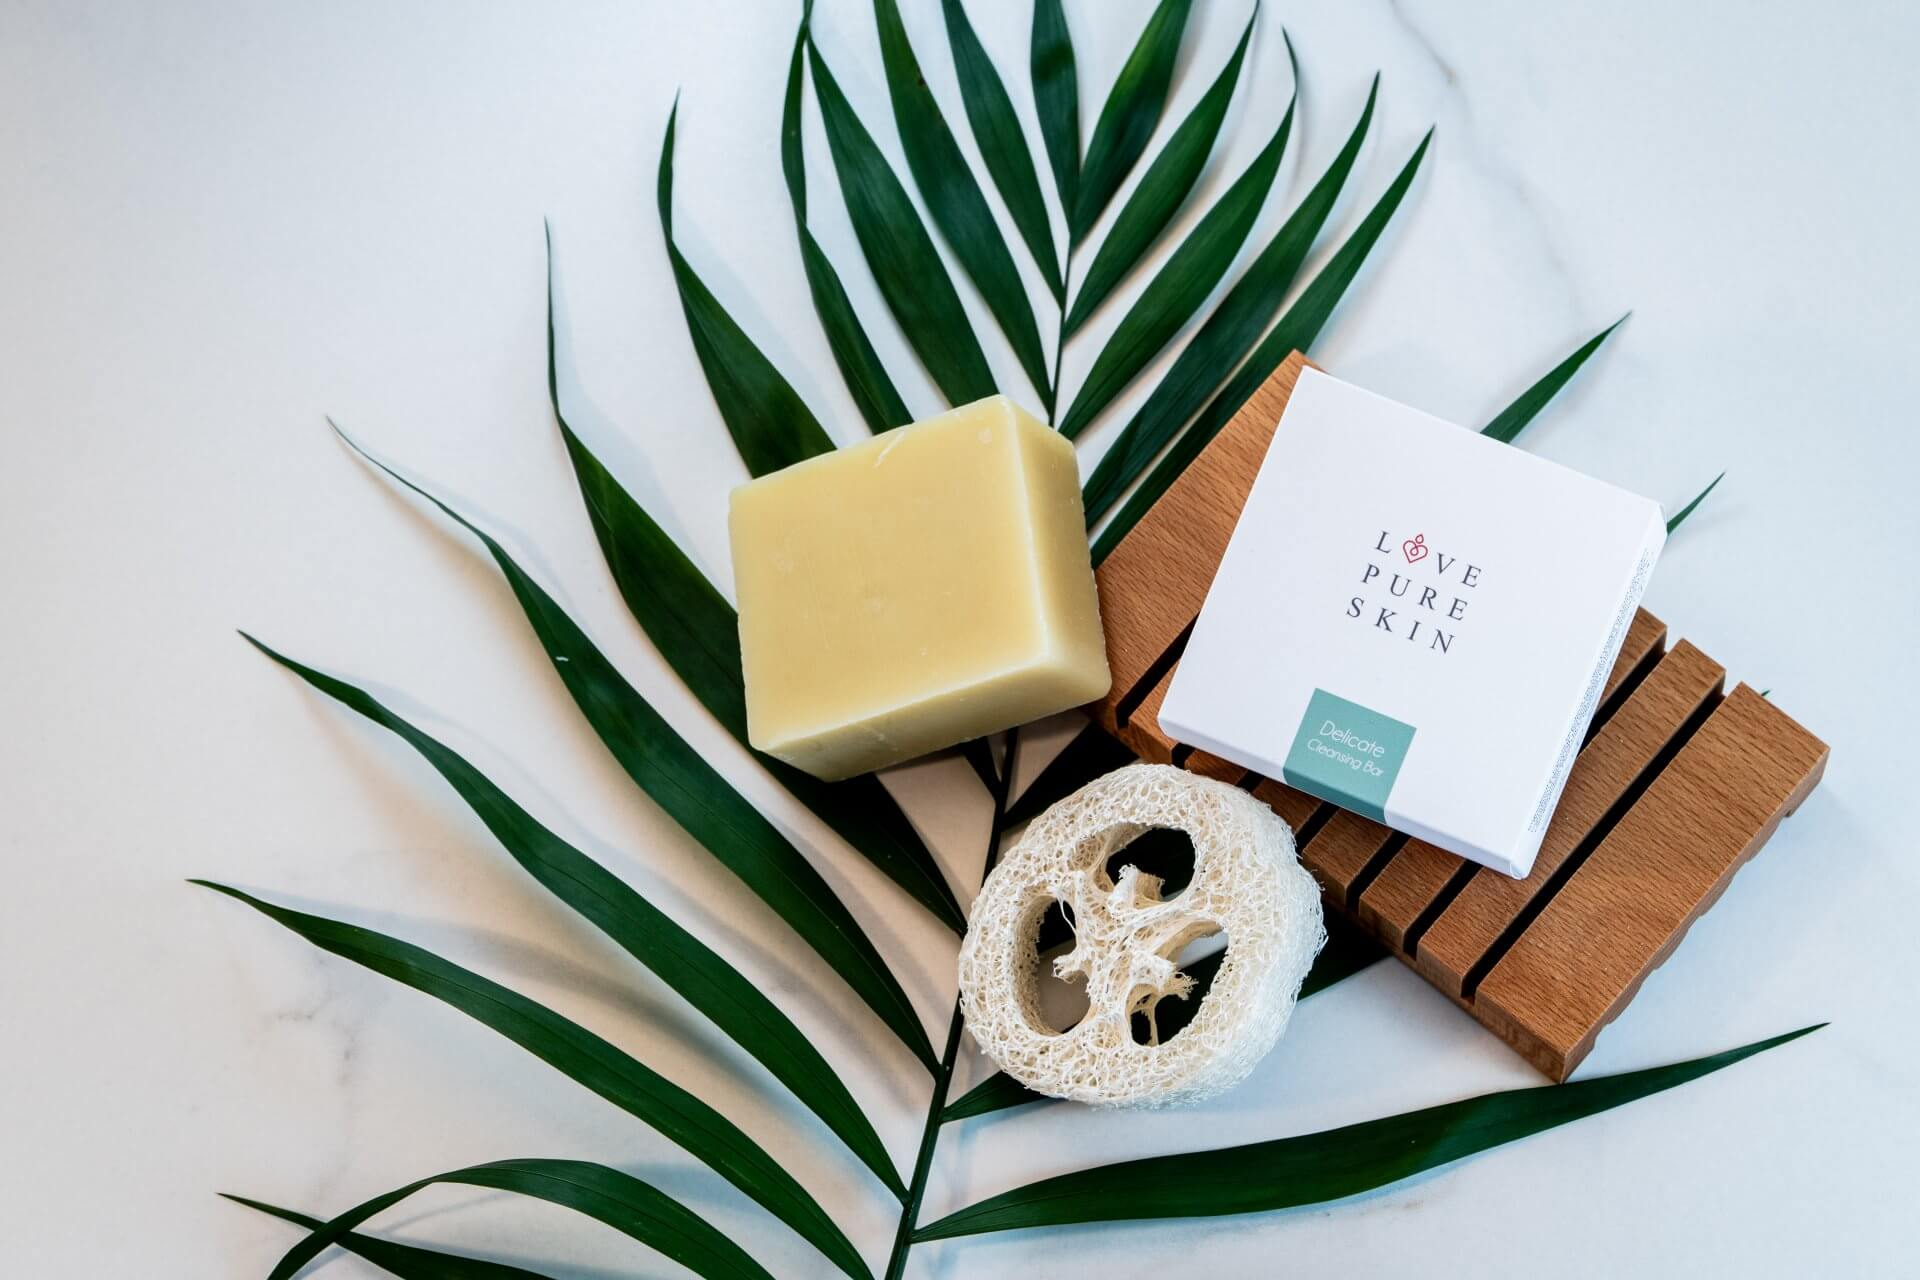 LOVE PURE SKIN Delicate Cleansing Bar